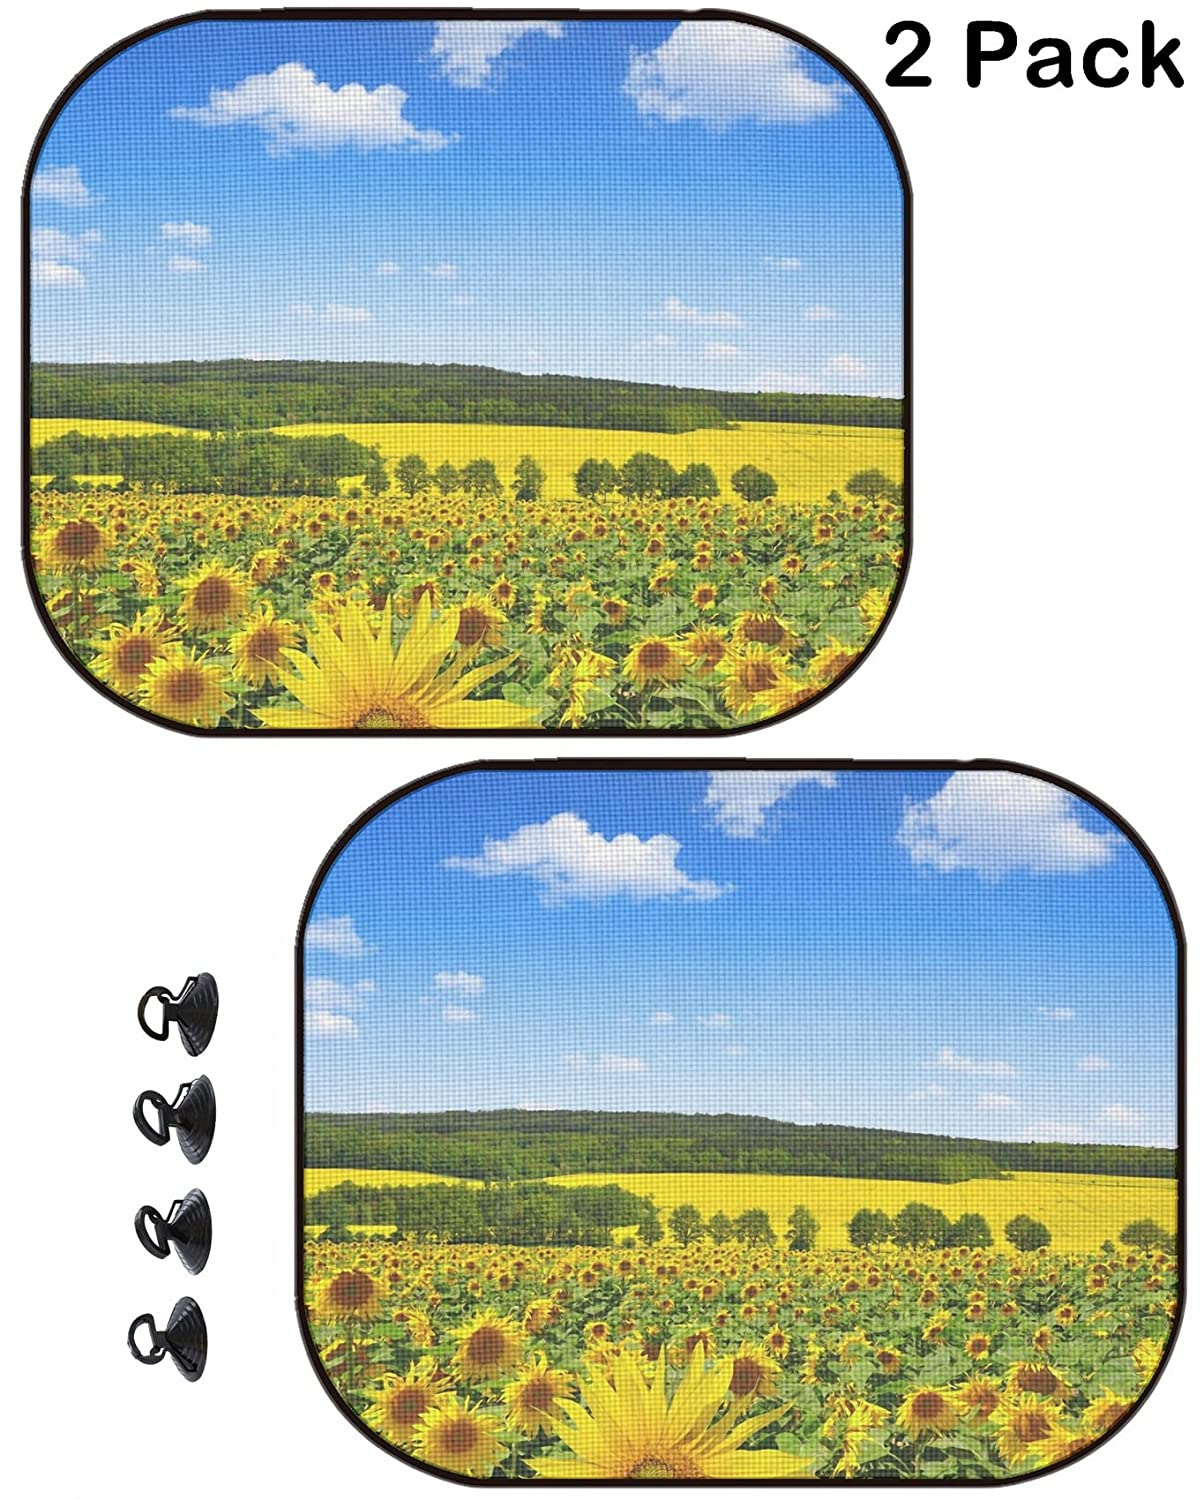 2 Pack Image ID 24590571 Spring Landscape with Sunflower Field MSD Car Sun Shade Protector Side Window Block Damaging UV Rays Sunlight Heat for All Vehicles